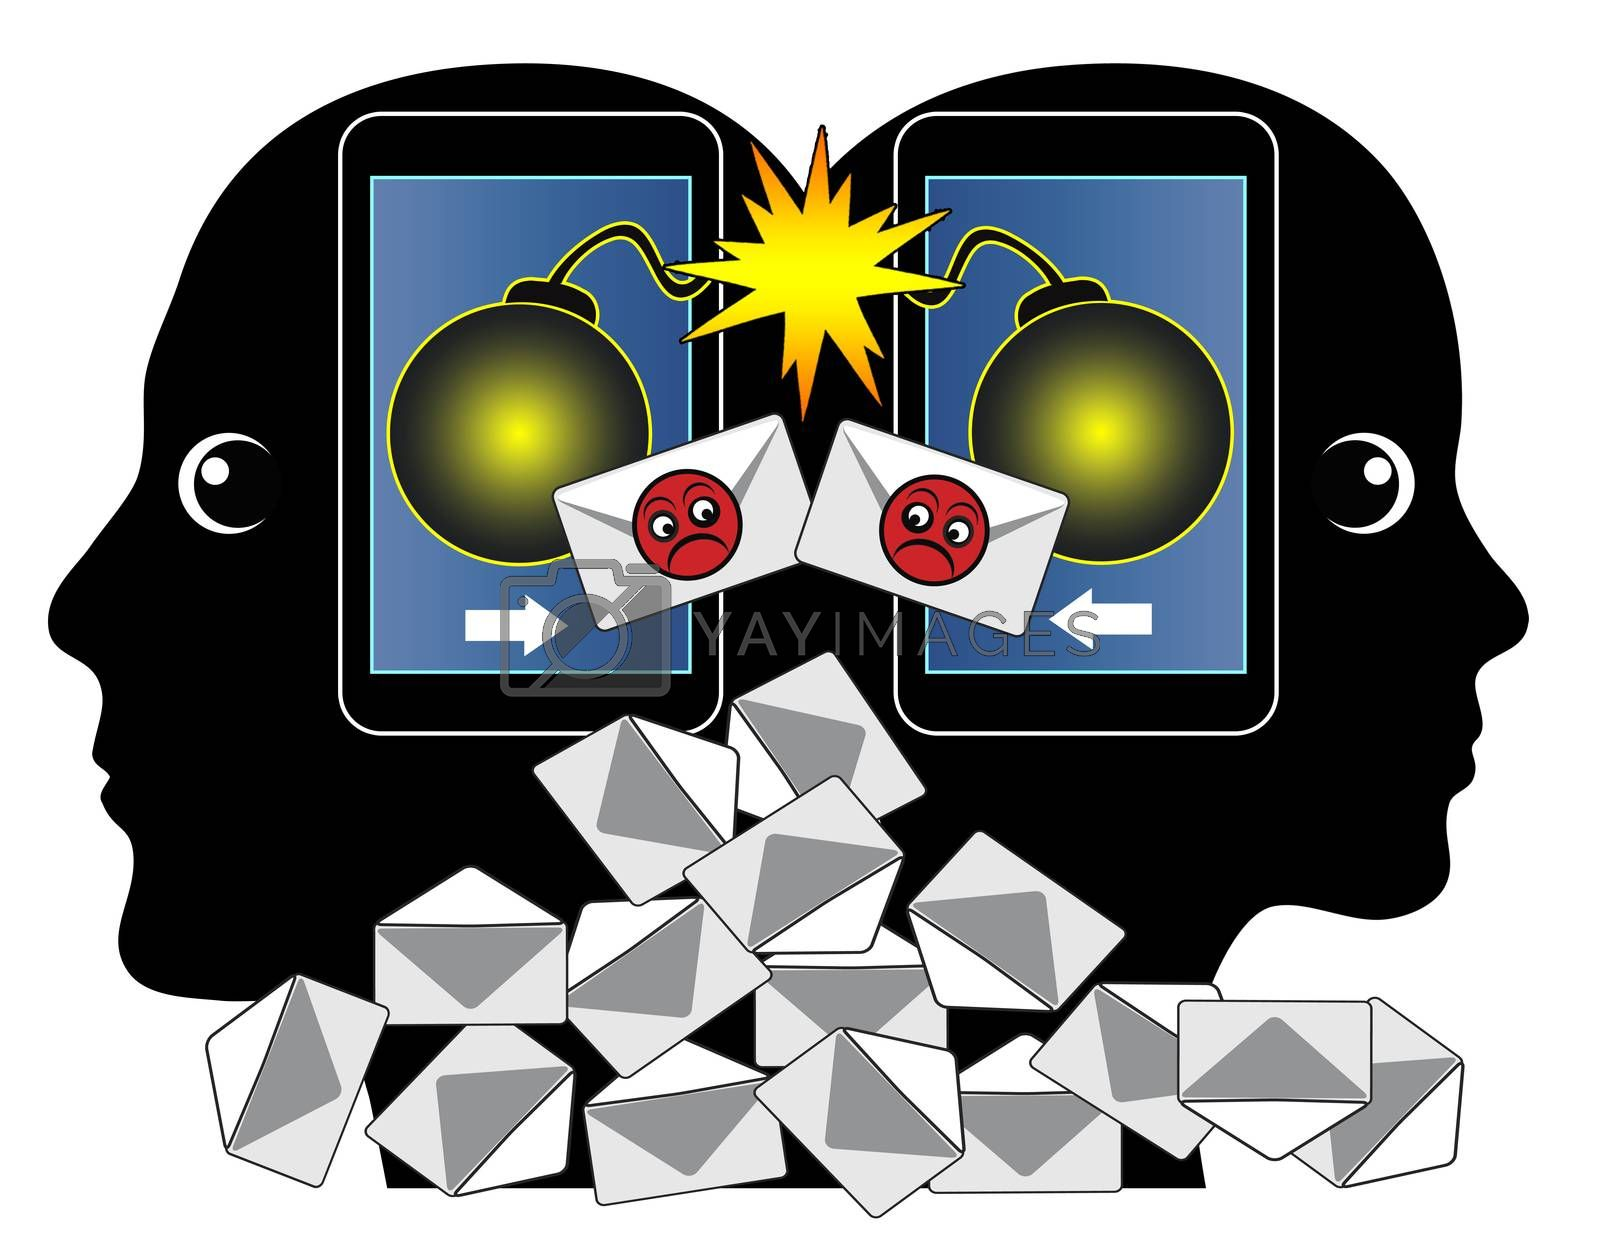 Communication problem between two people through aggressive email messages